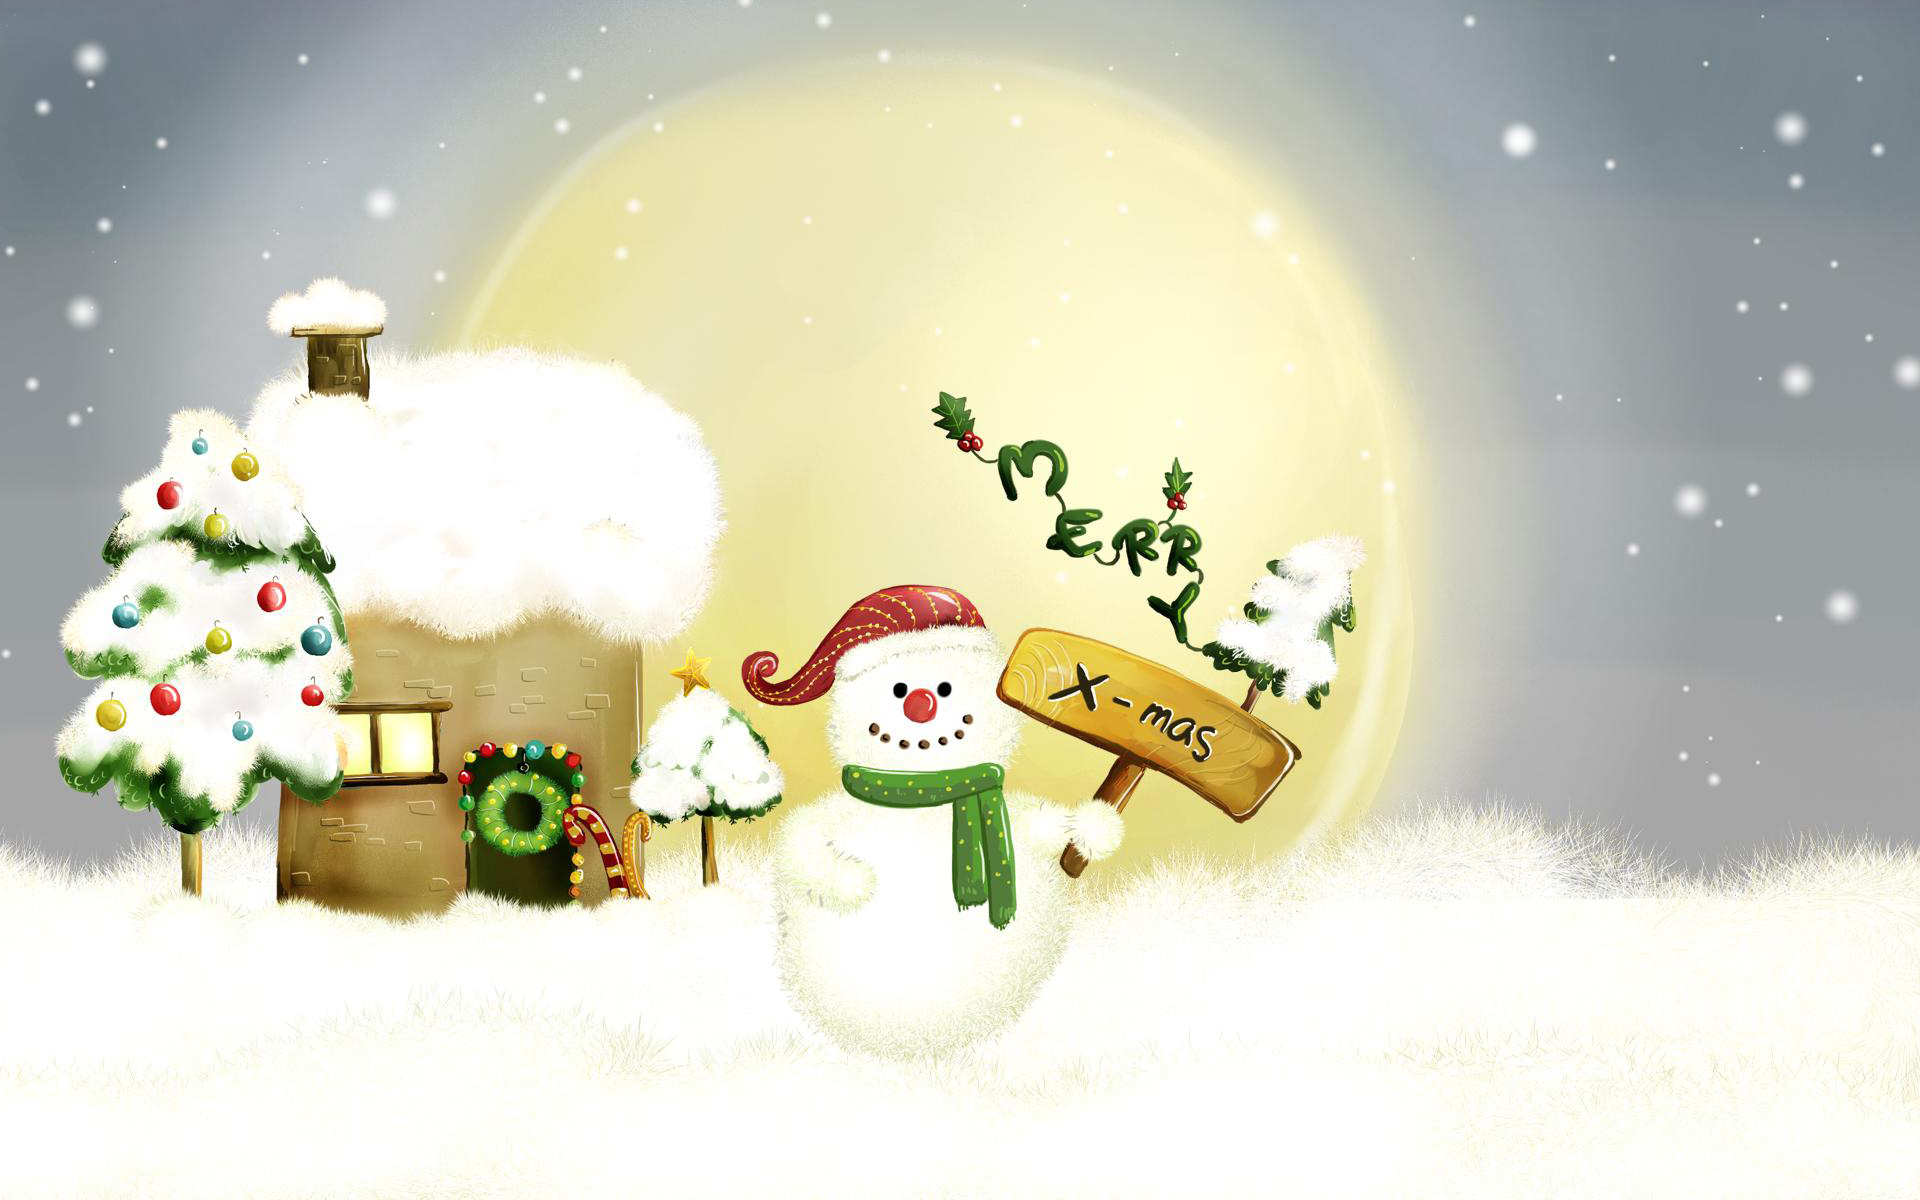 186 1869282 snowman merry xmas wallpaper cute merry christmas images